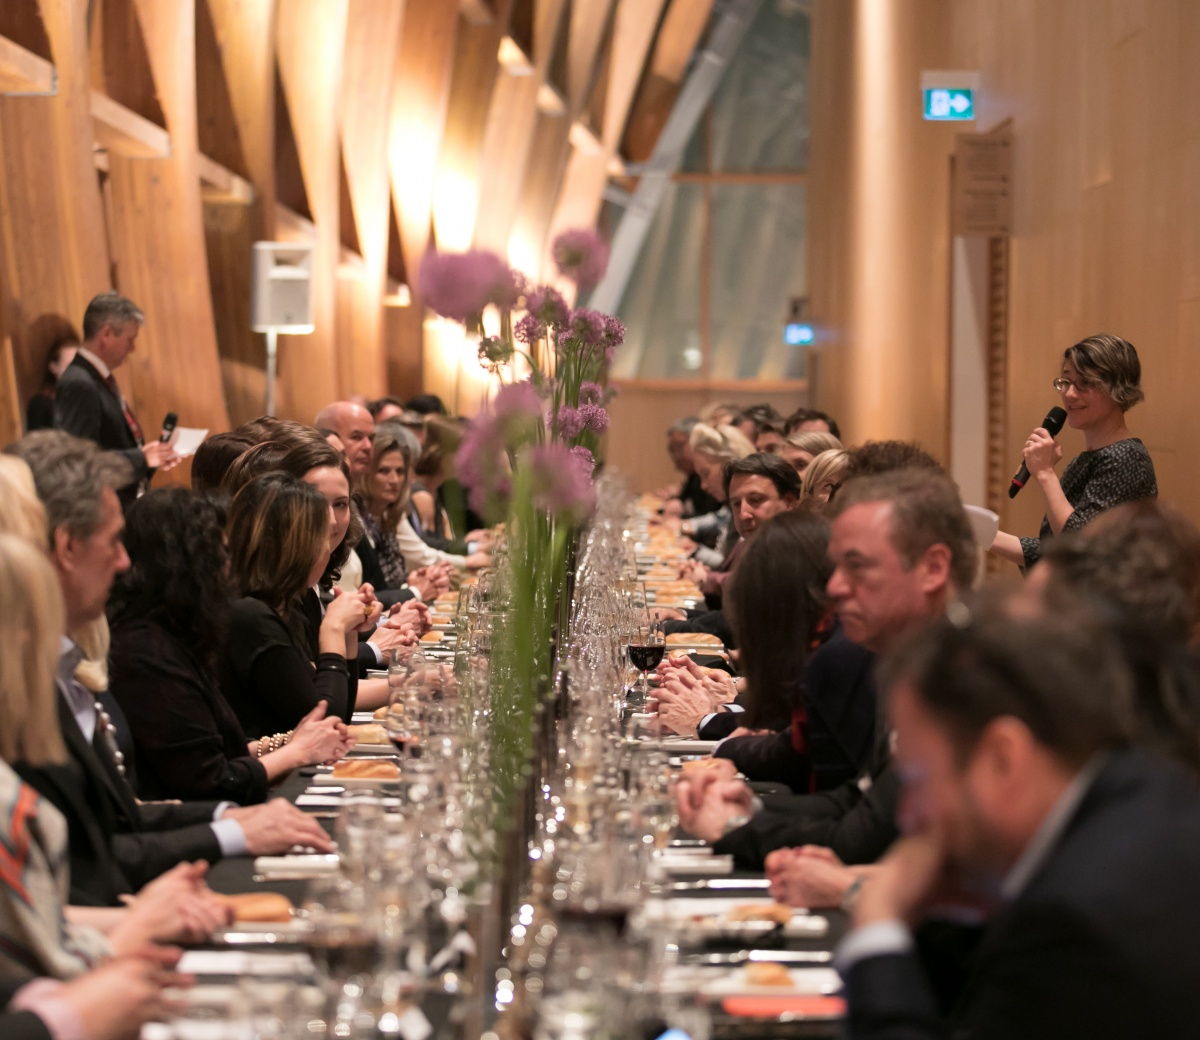 Corporate event dinner in Galleria Italia